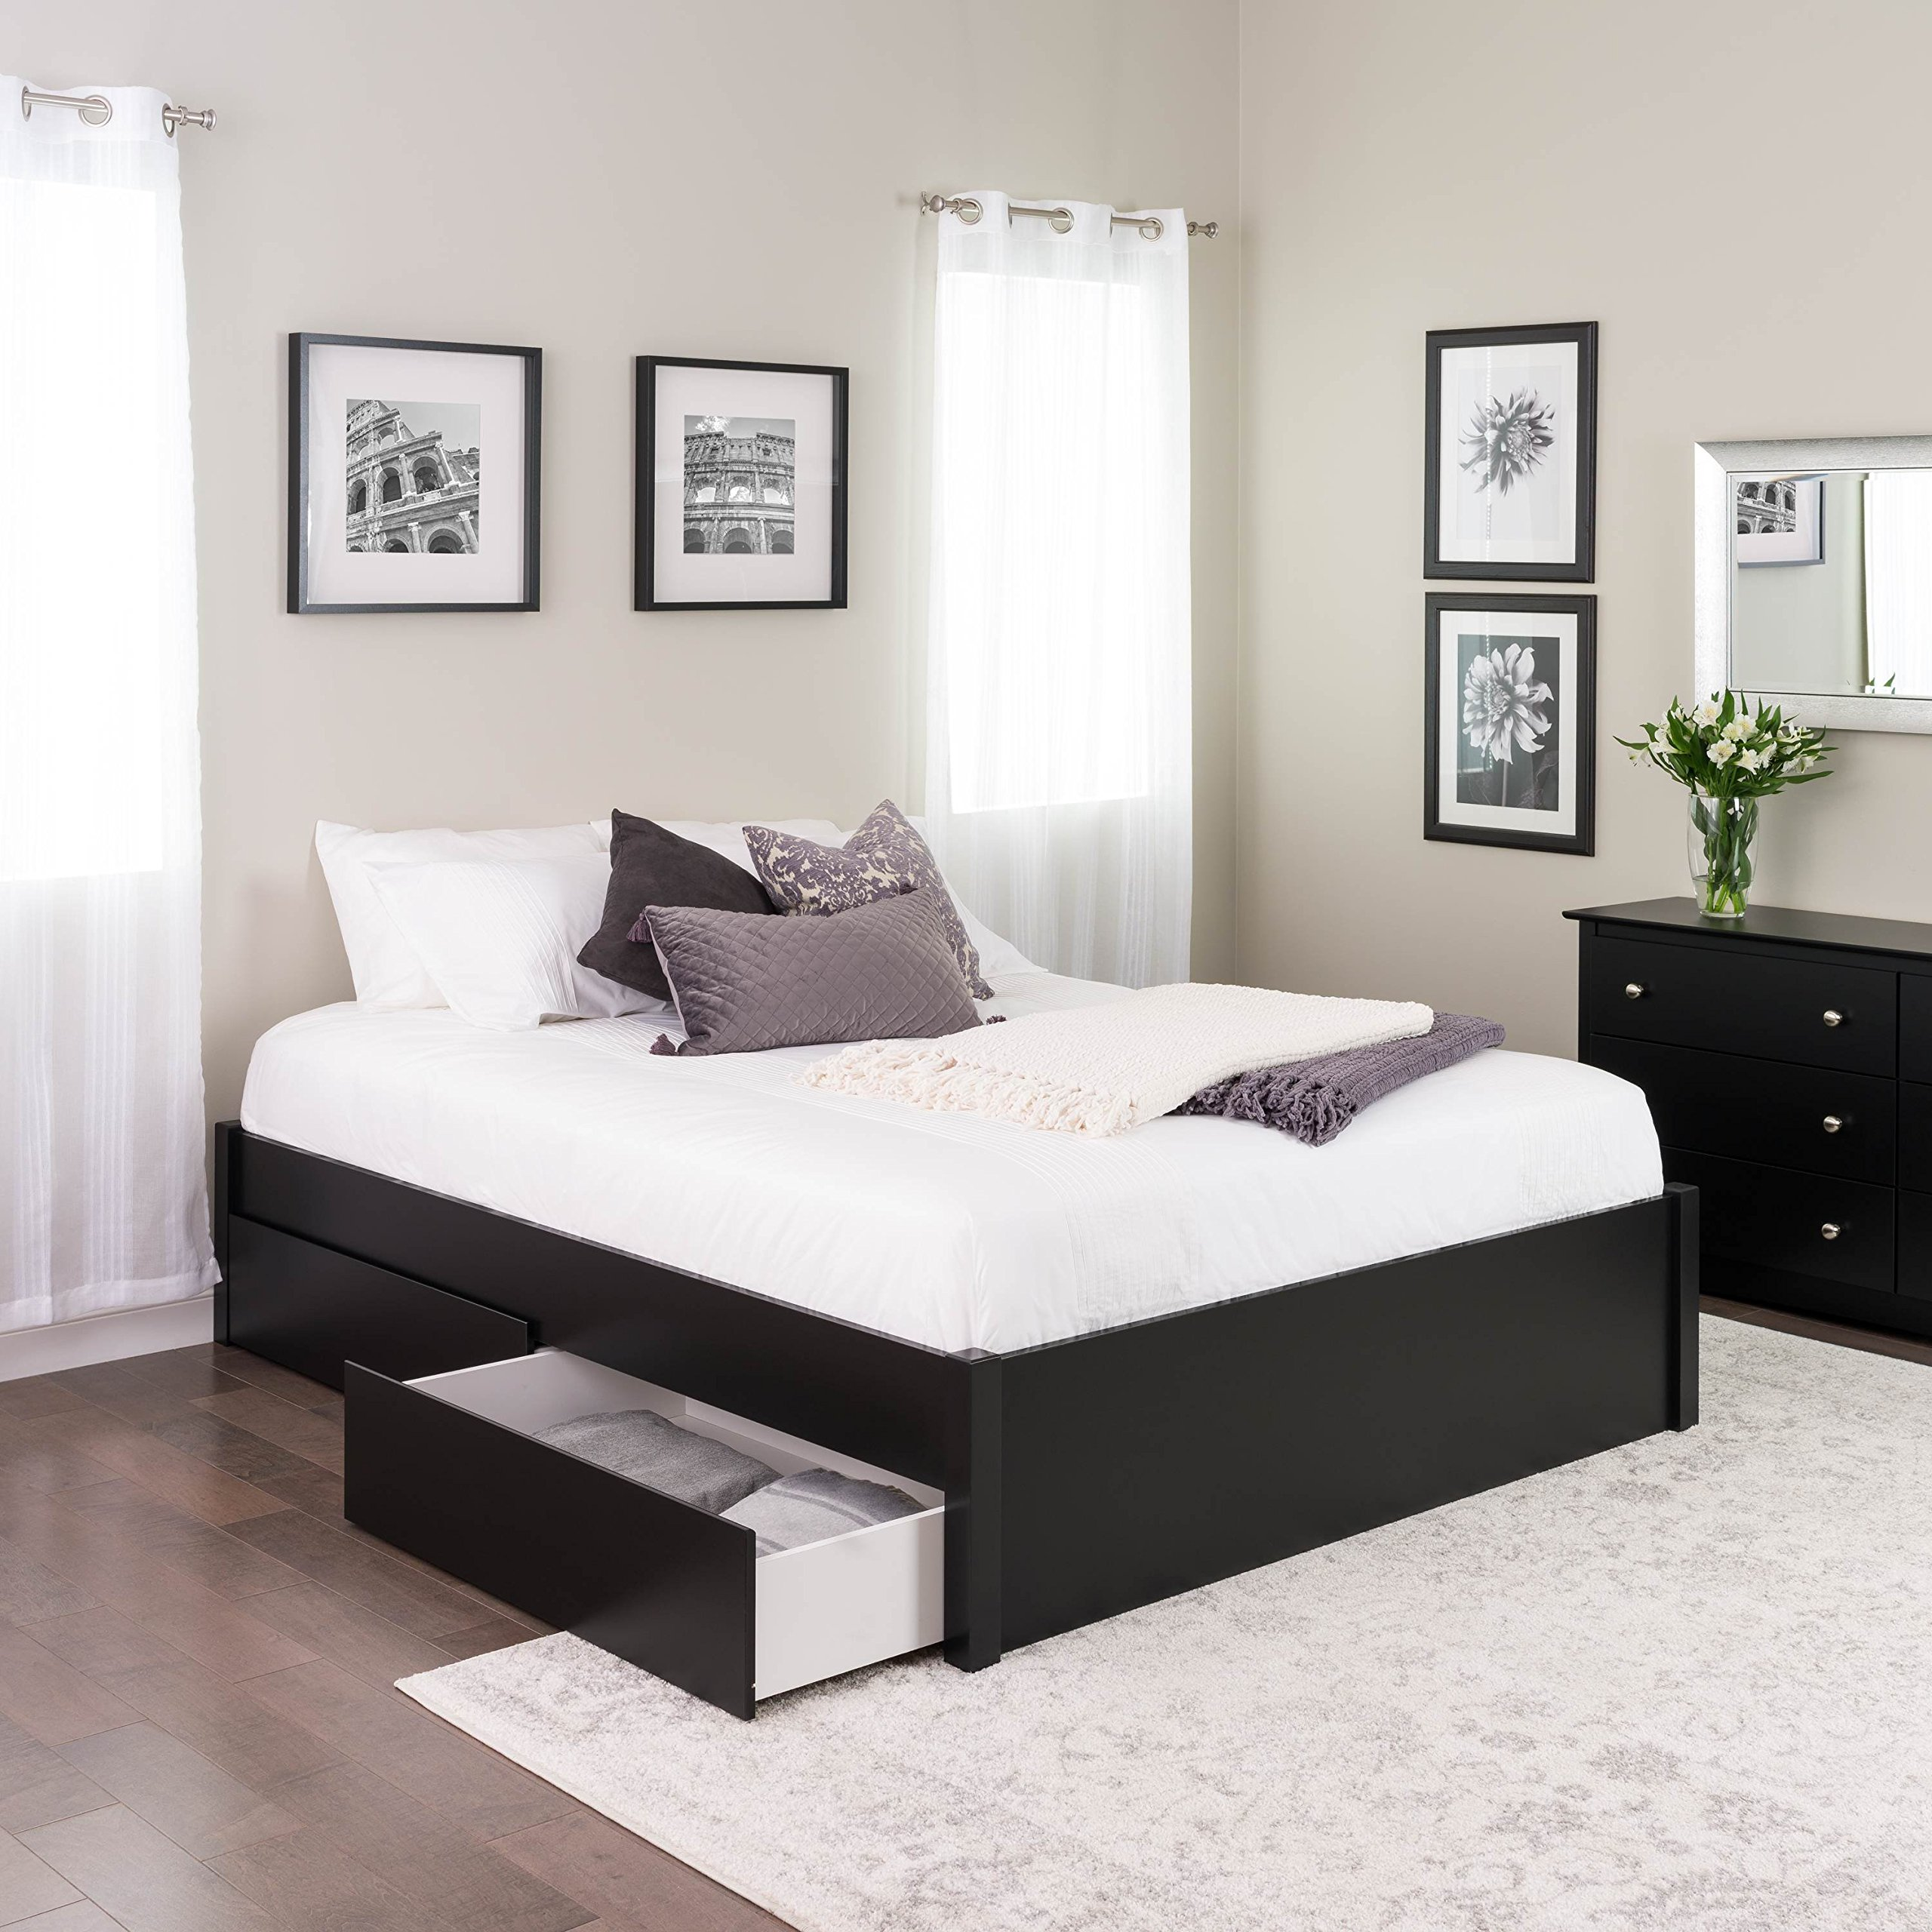 Queen Select 4-Post Platform Bed with 2 Drawers, Black by Prepac